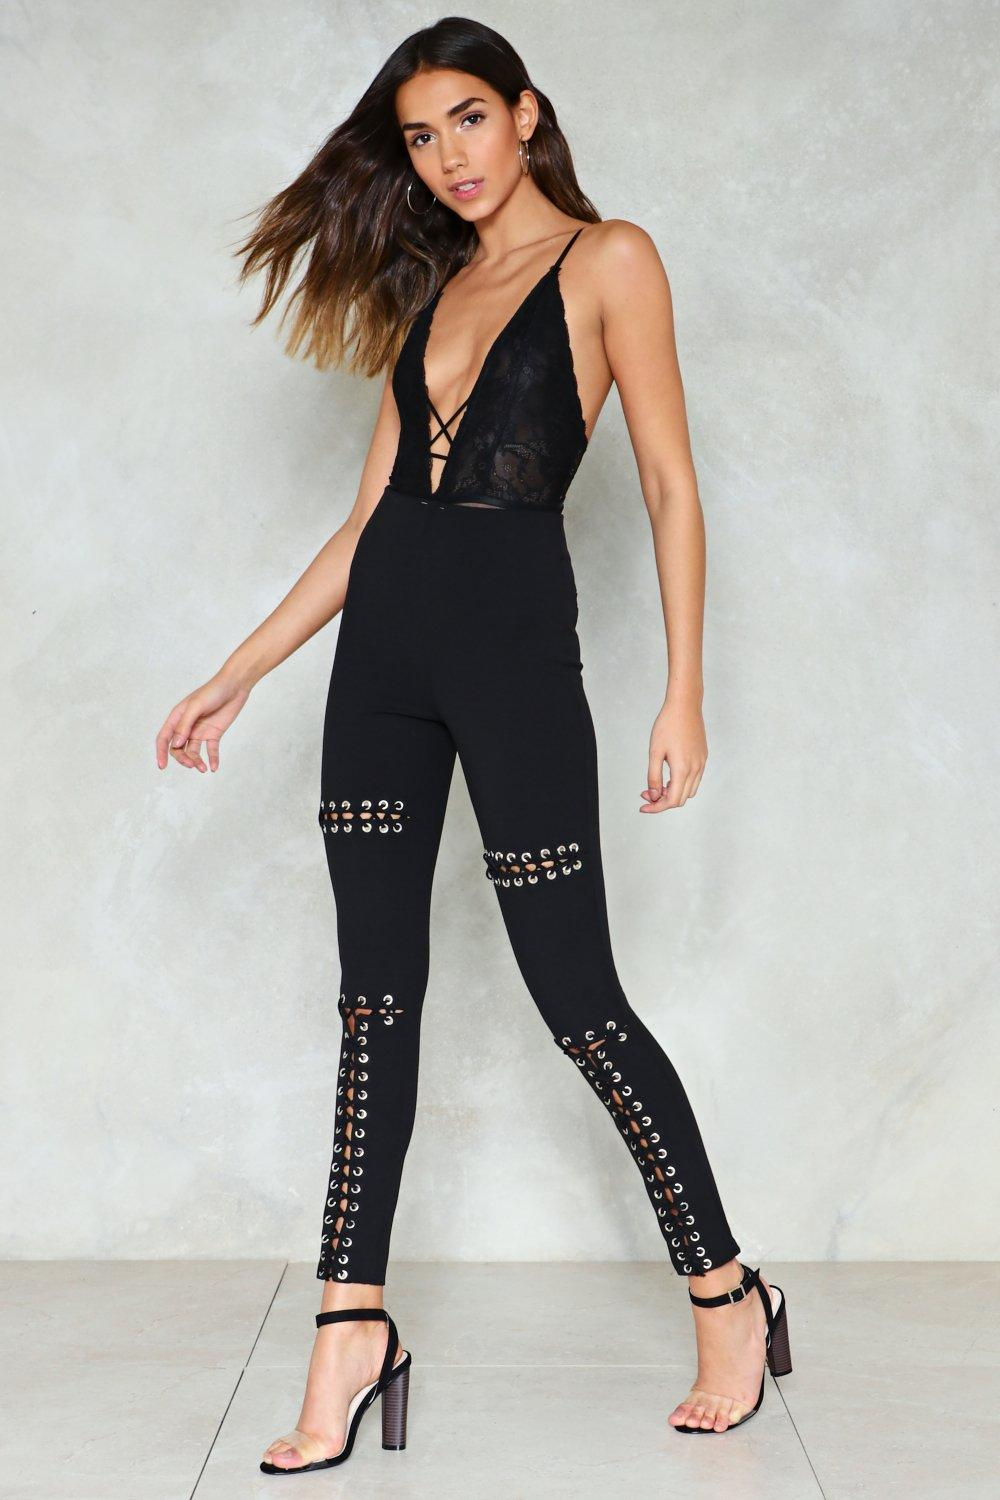 422696390c1c9e Tongue-Tied Lace-Up Pants | Shop Clothes at Nasty Gal!